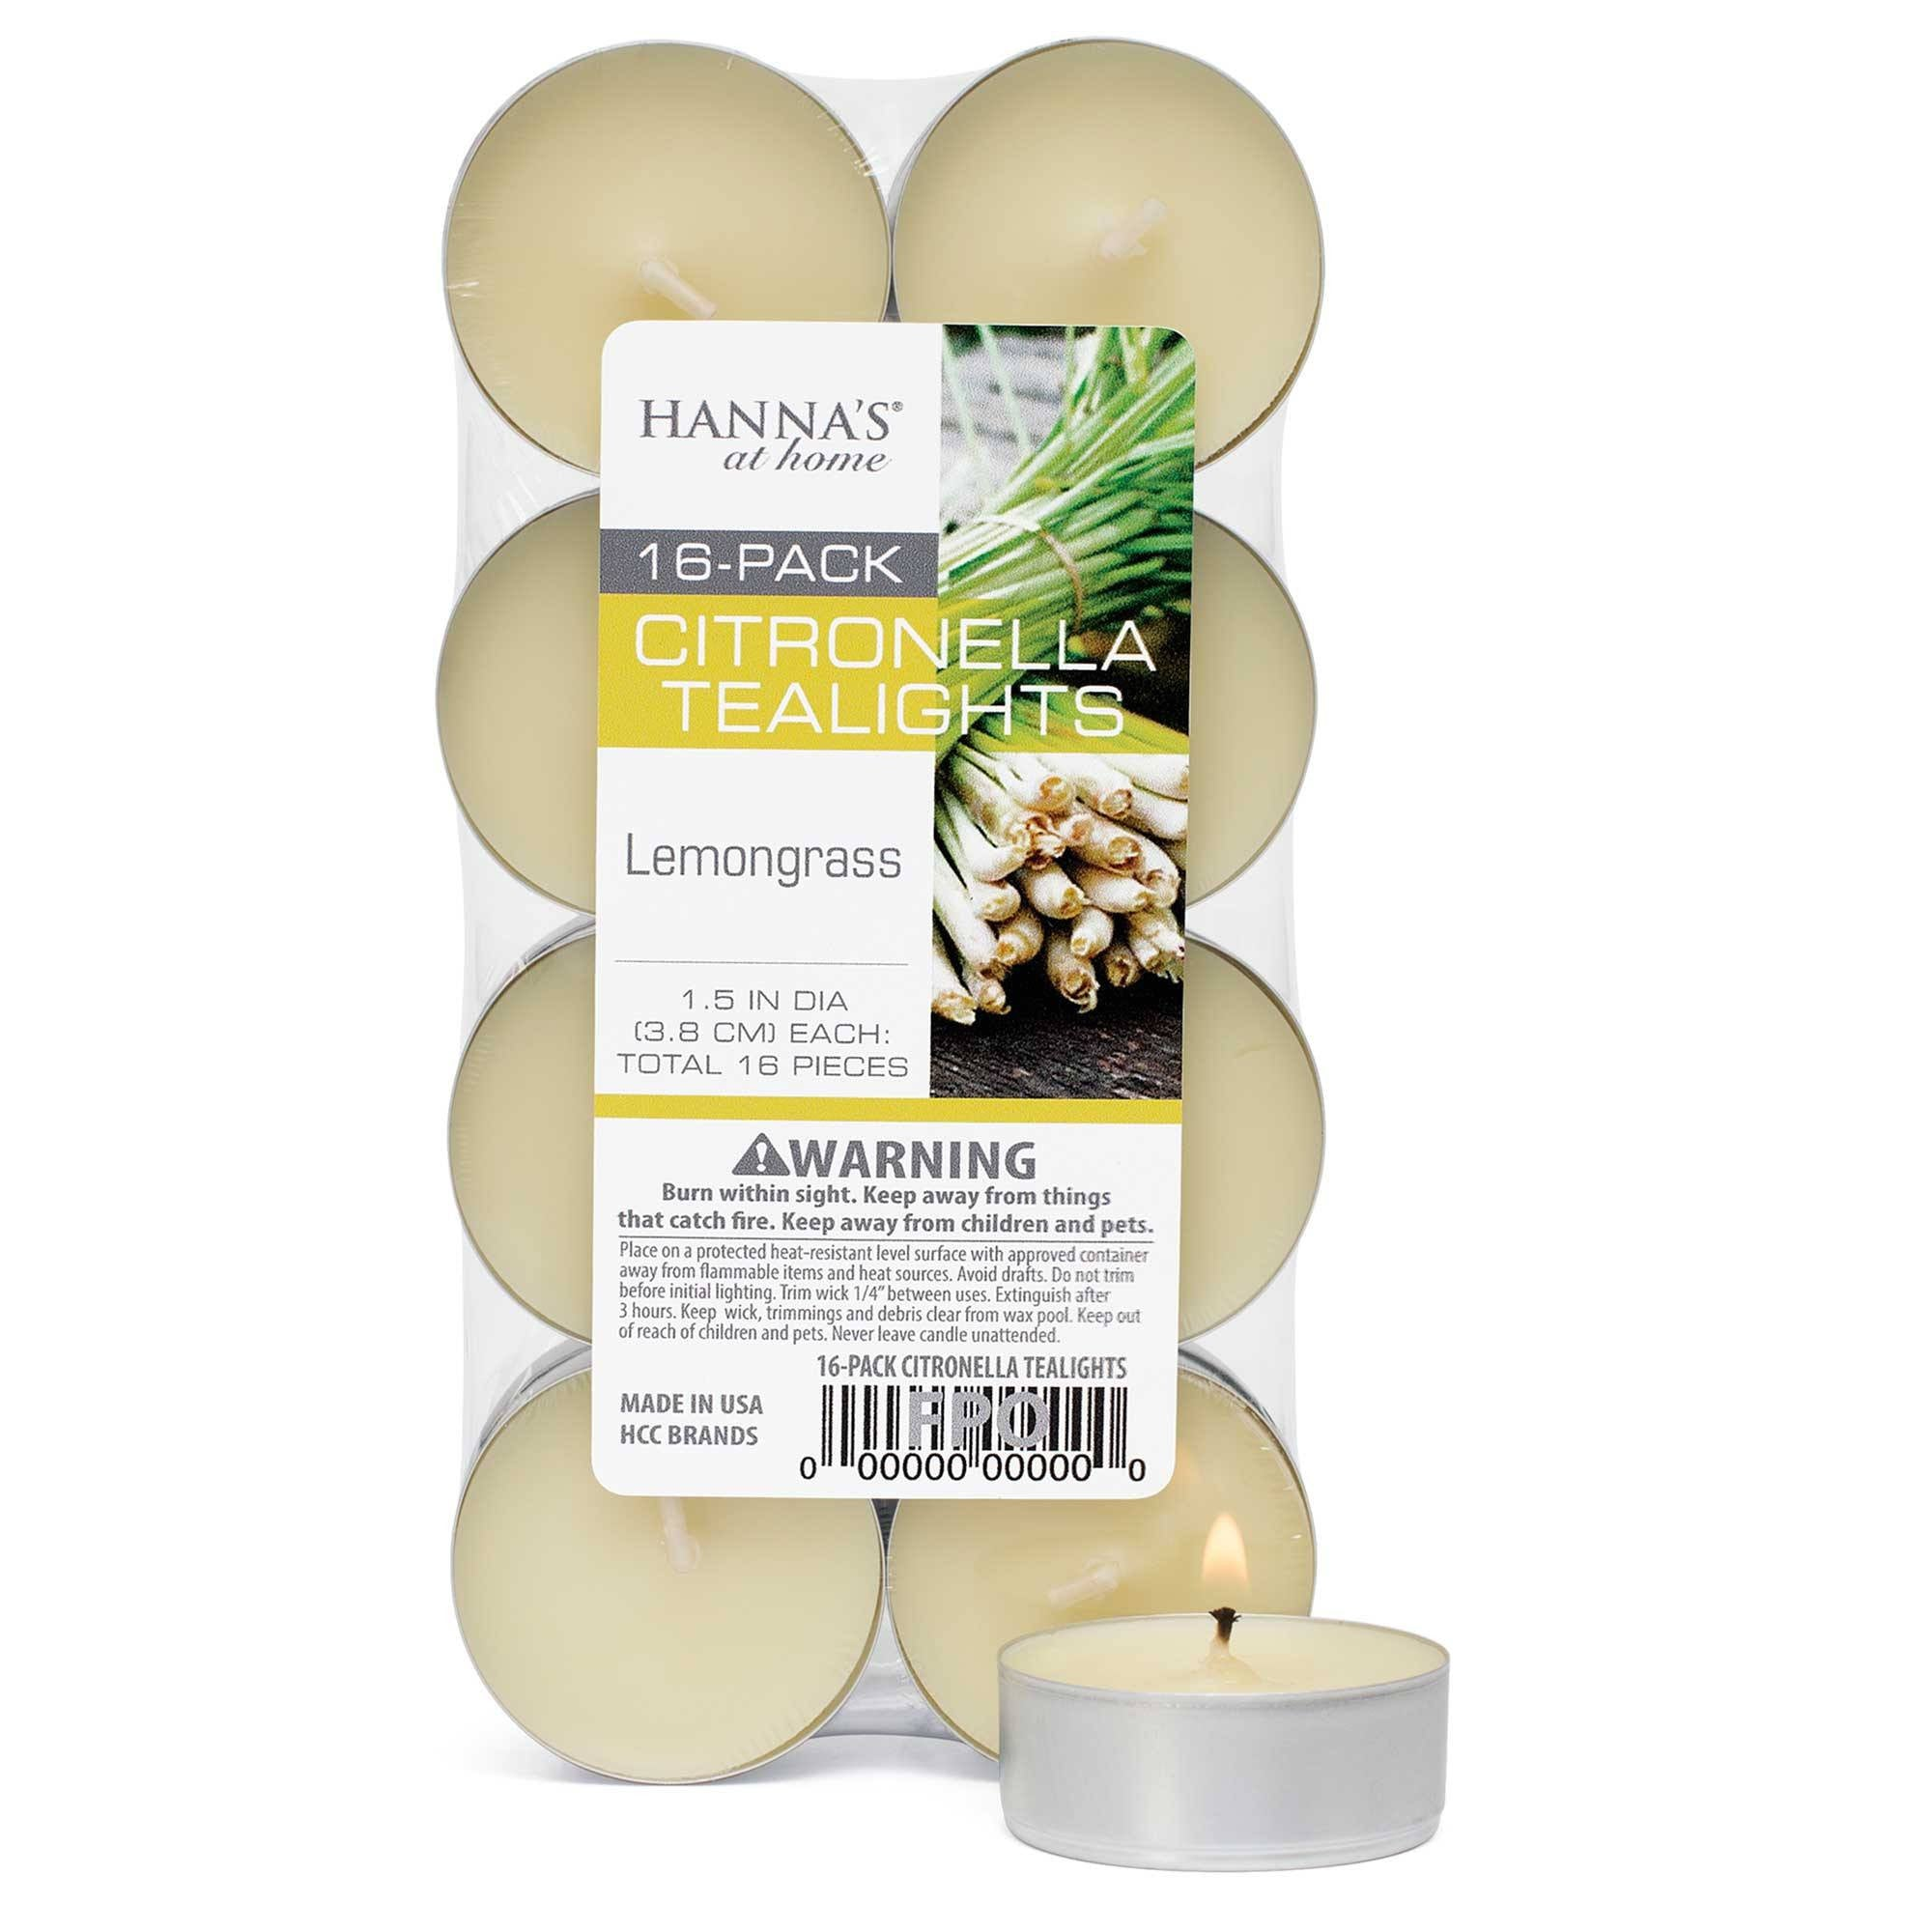 Citronella Lemongrass Scented Tealights Candles Candlemart.com $ 1.99